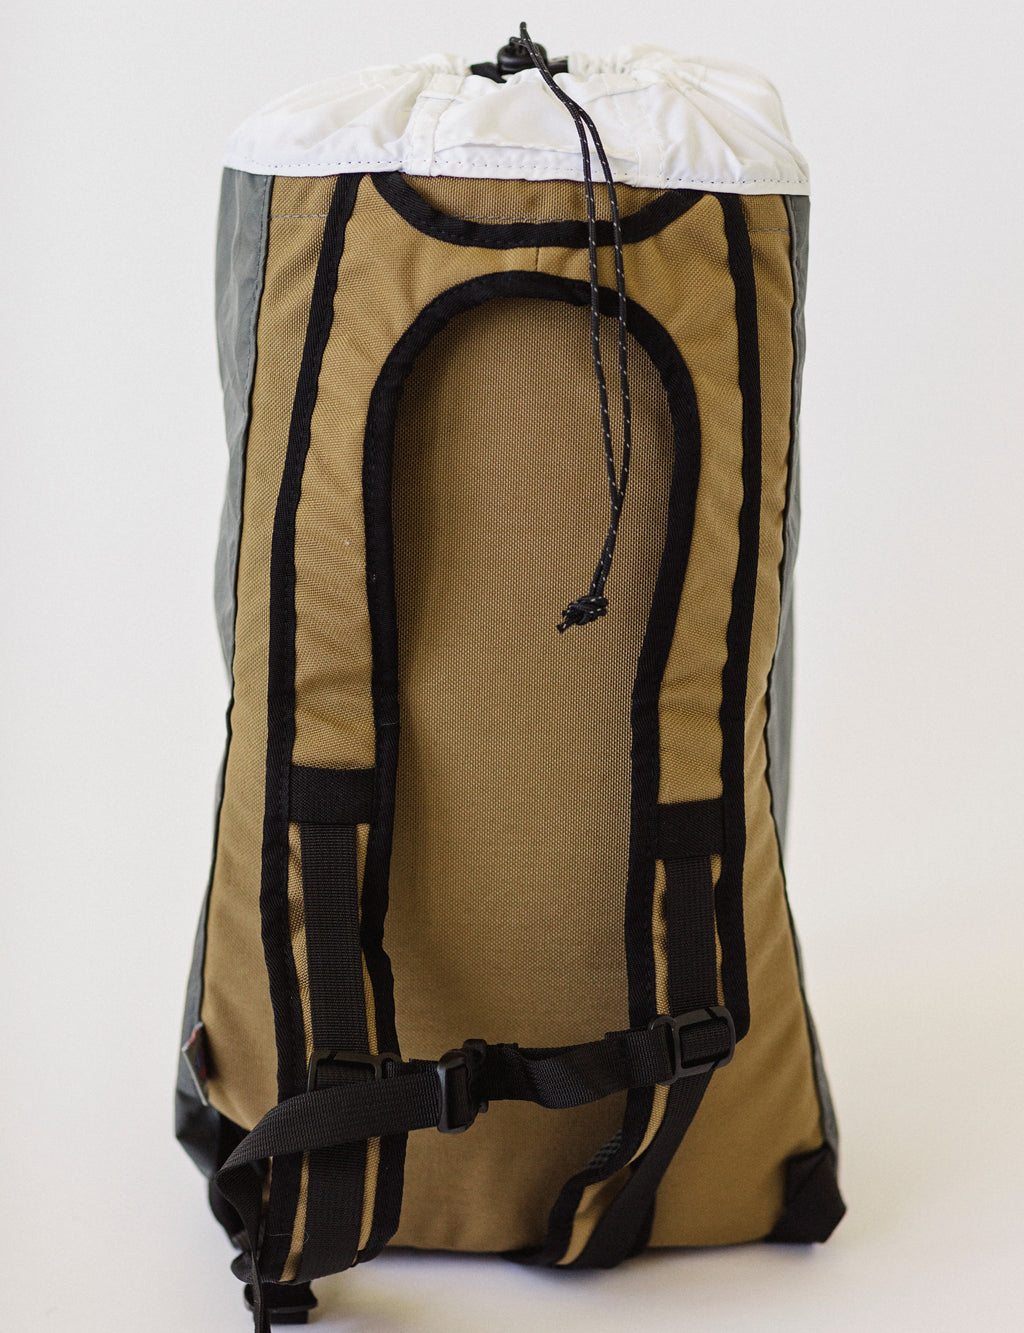 LUSB171 Ultralight Day Pack Coyote/Grey Back Side View